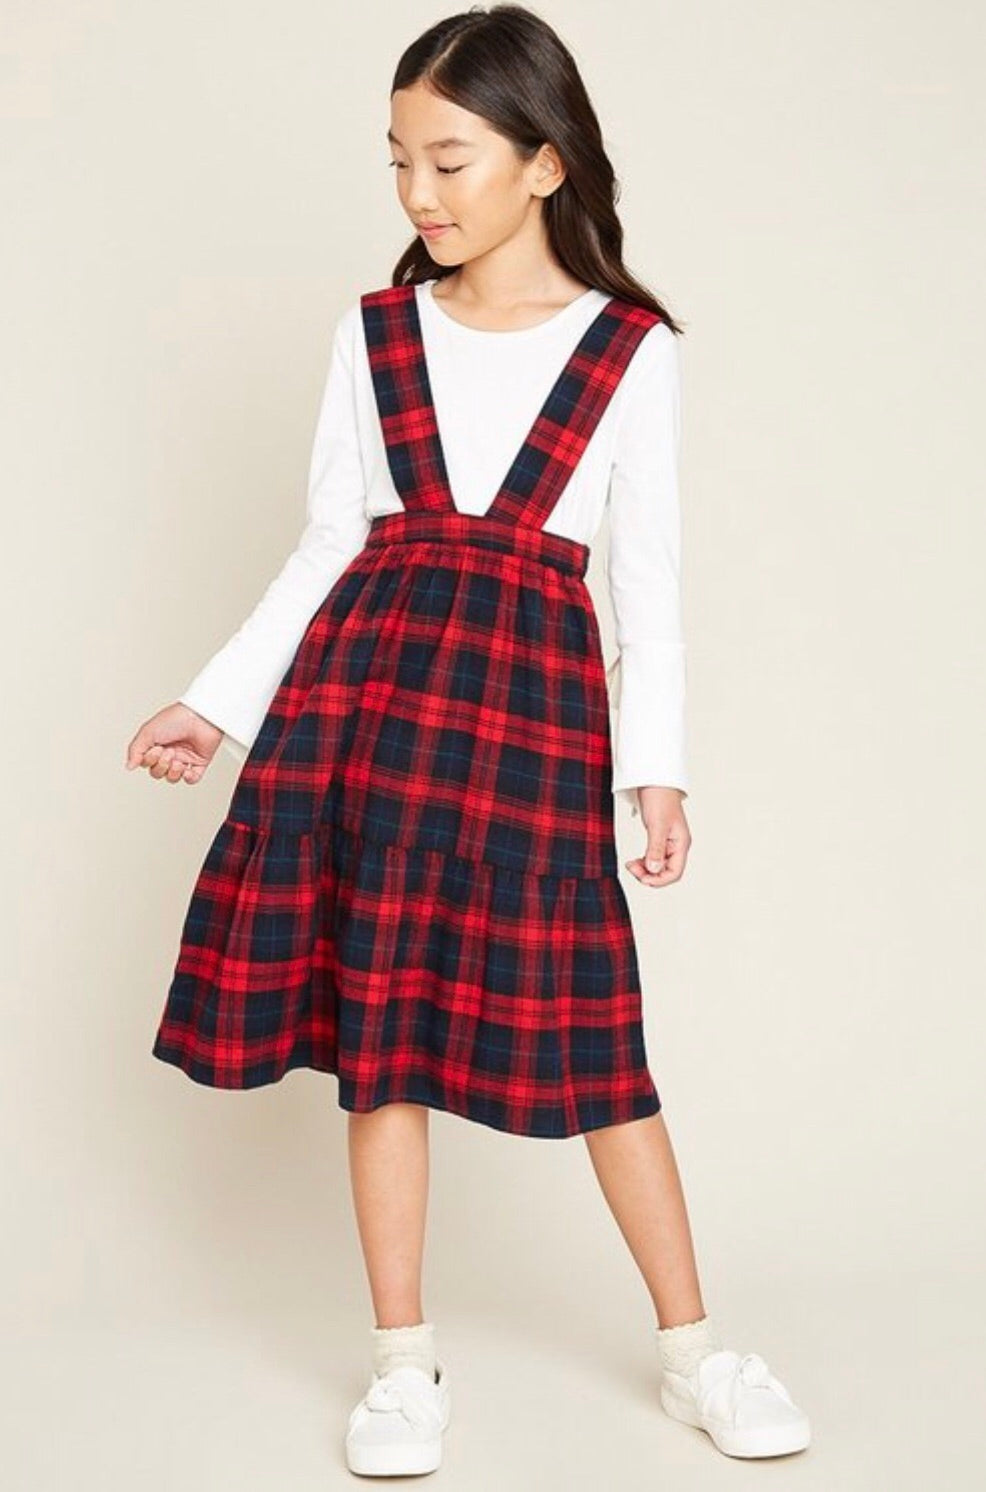 GIRLS- Red Plaid Overall Dress